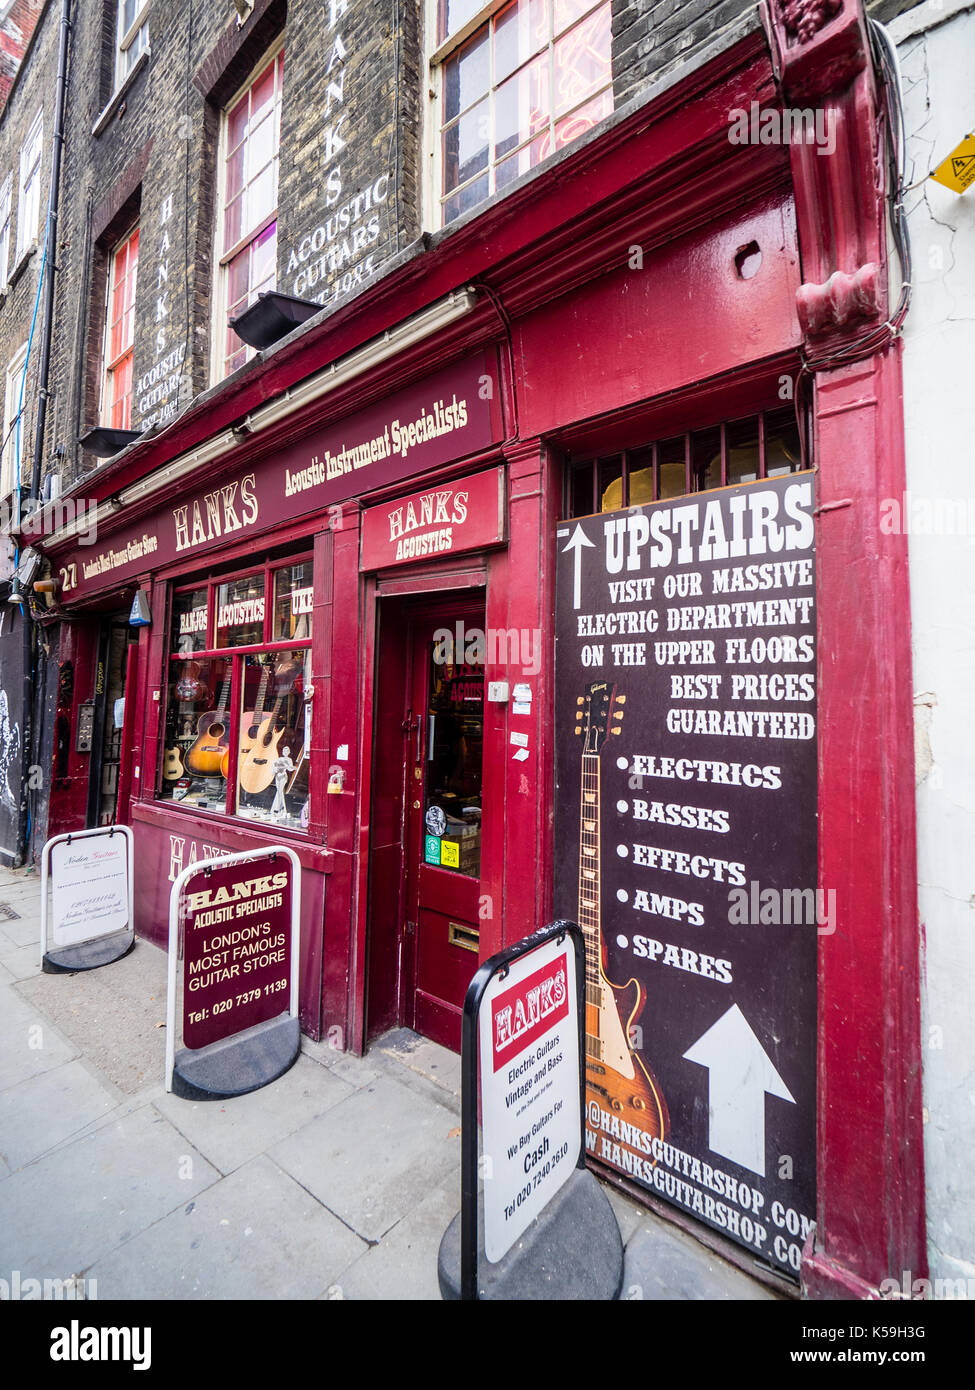 Hanks Guitar Store Shop in London's famous Demark Street in the Soho district - Stock Image